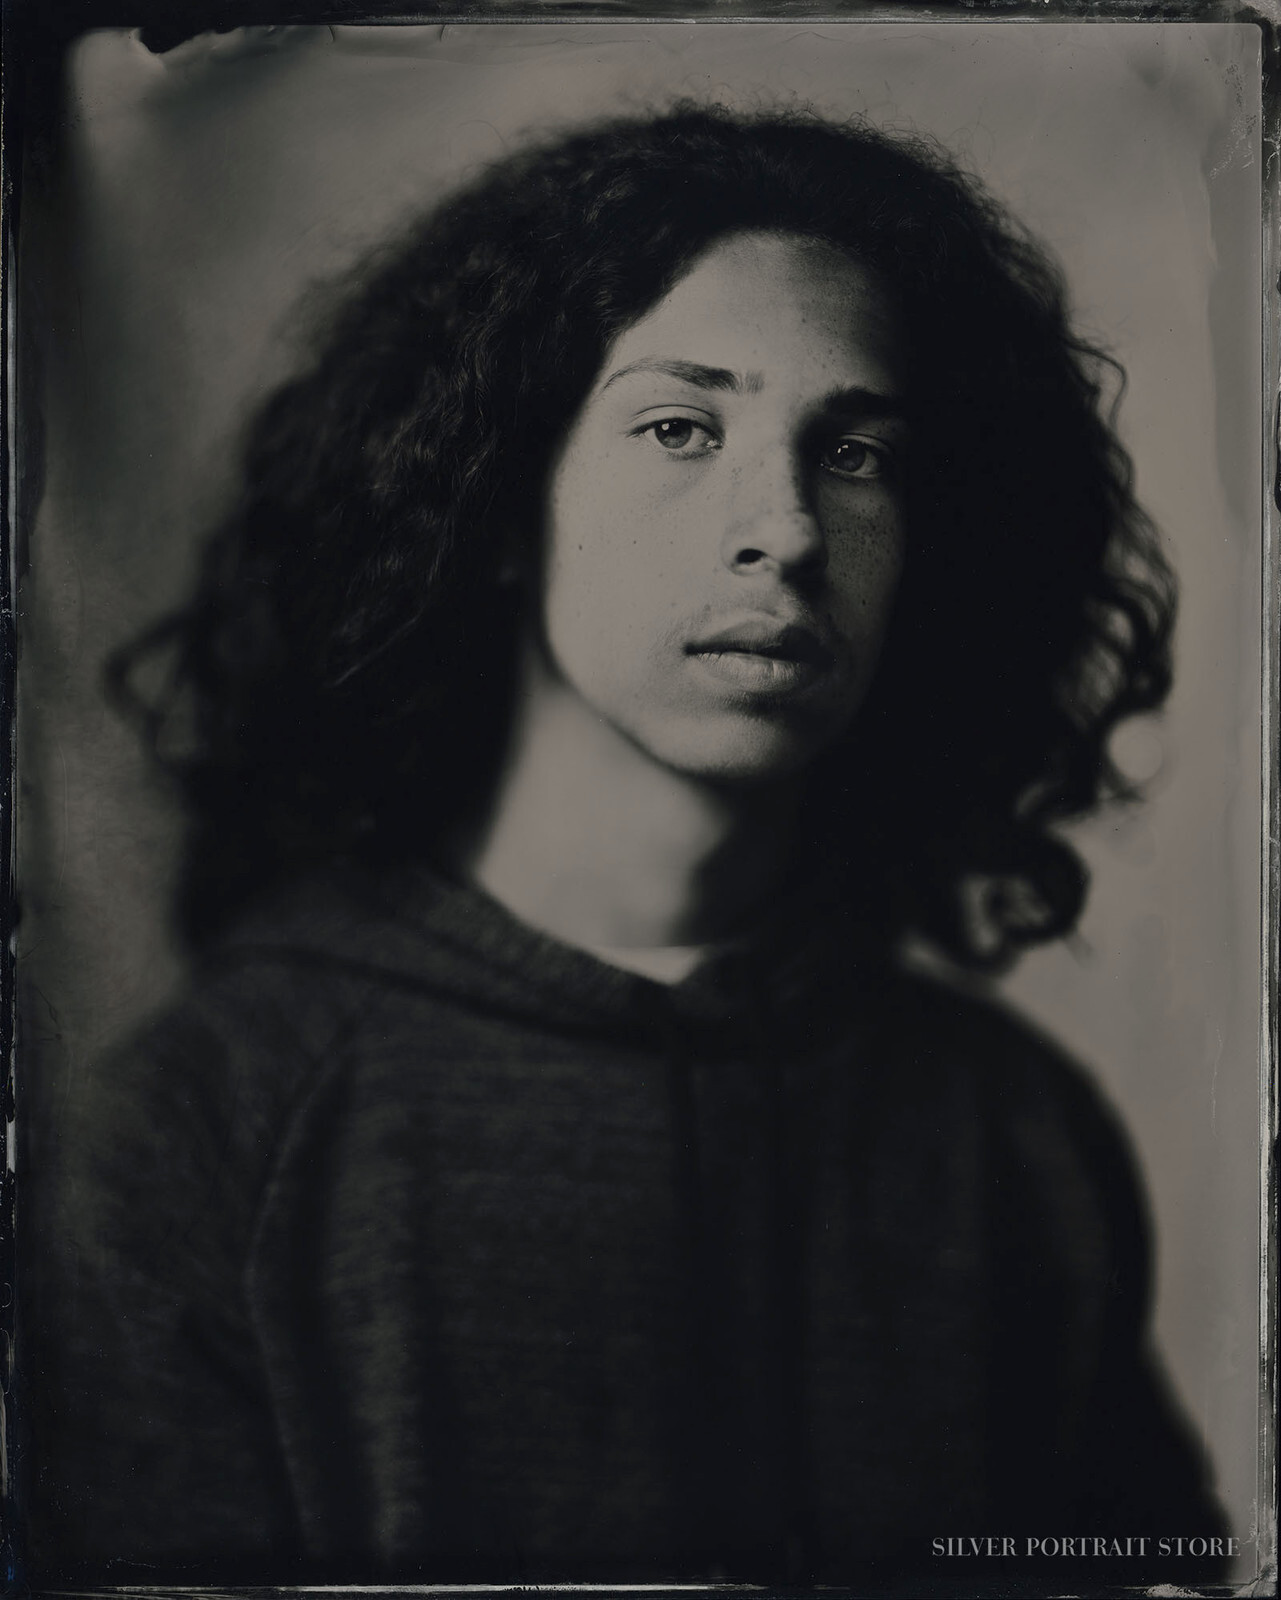 David-Silver Portrait Store-Wet plate collodion-Tintype 20 x 25 cm.